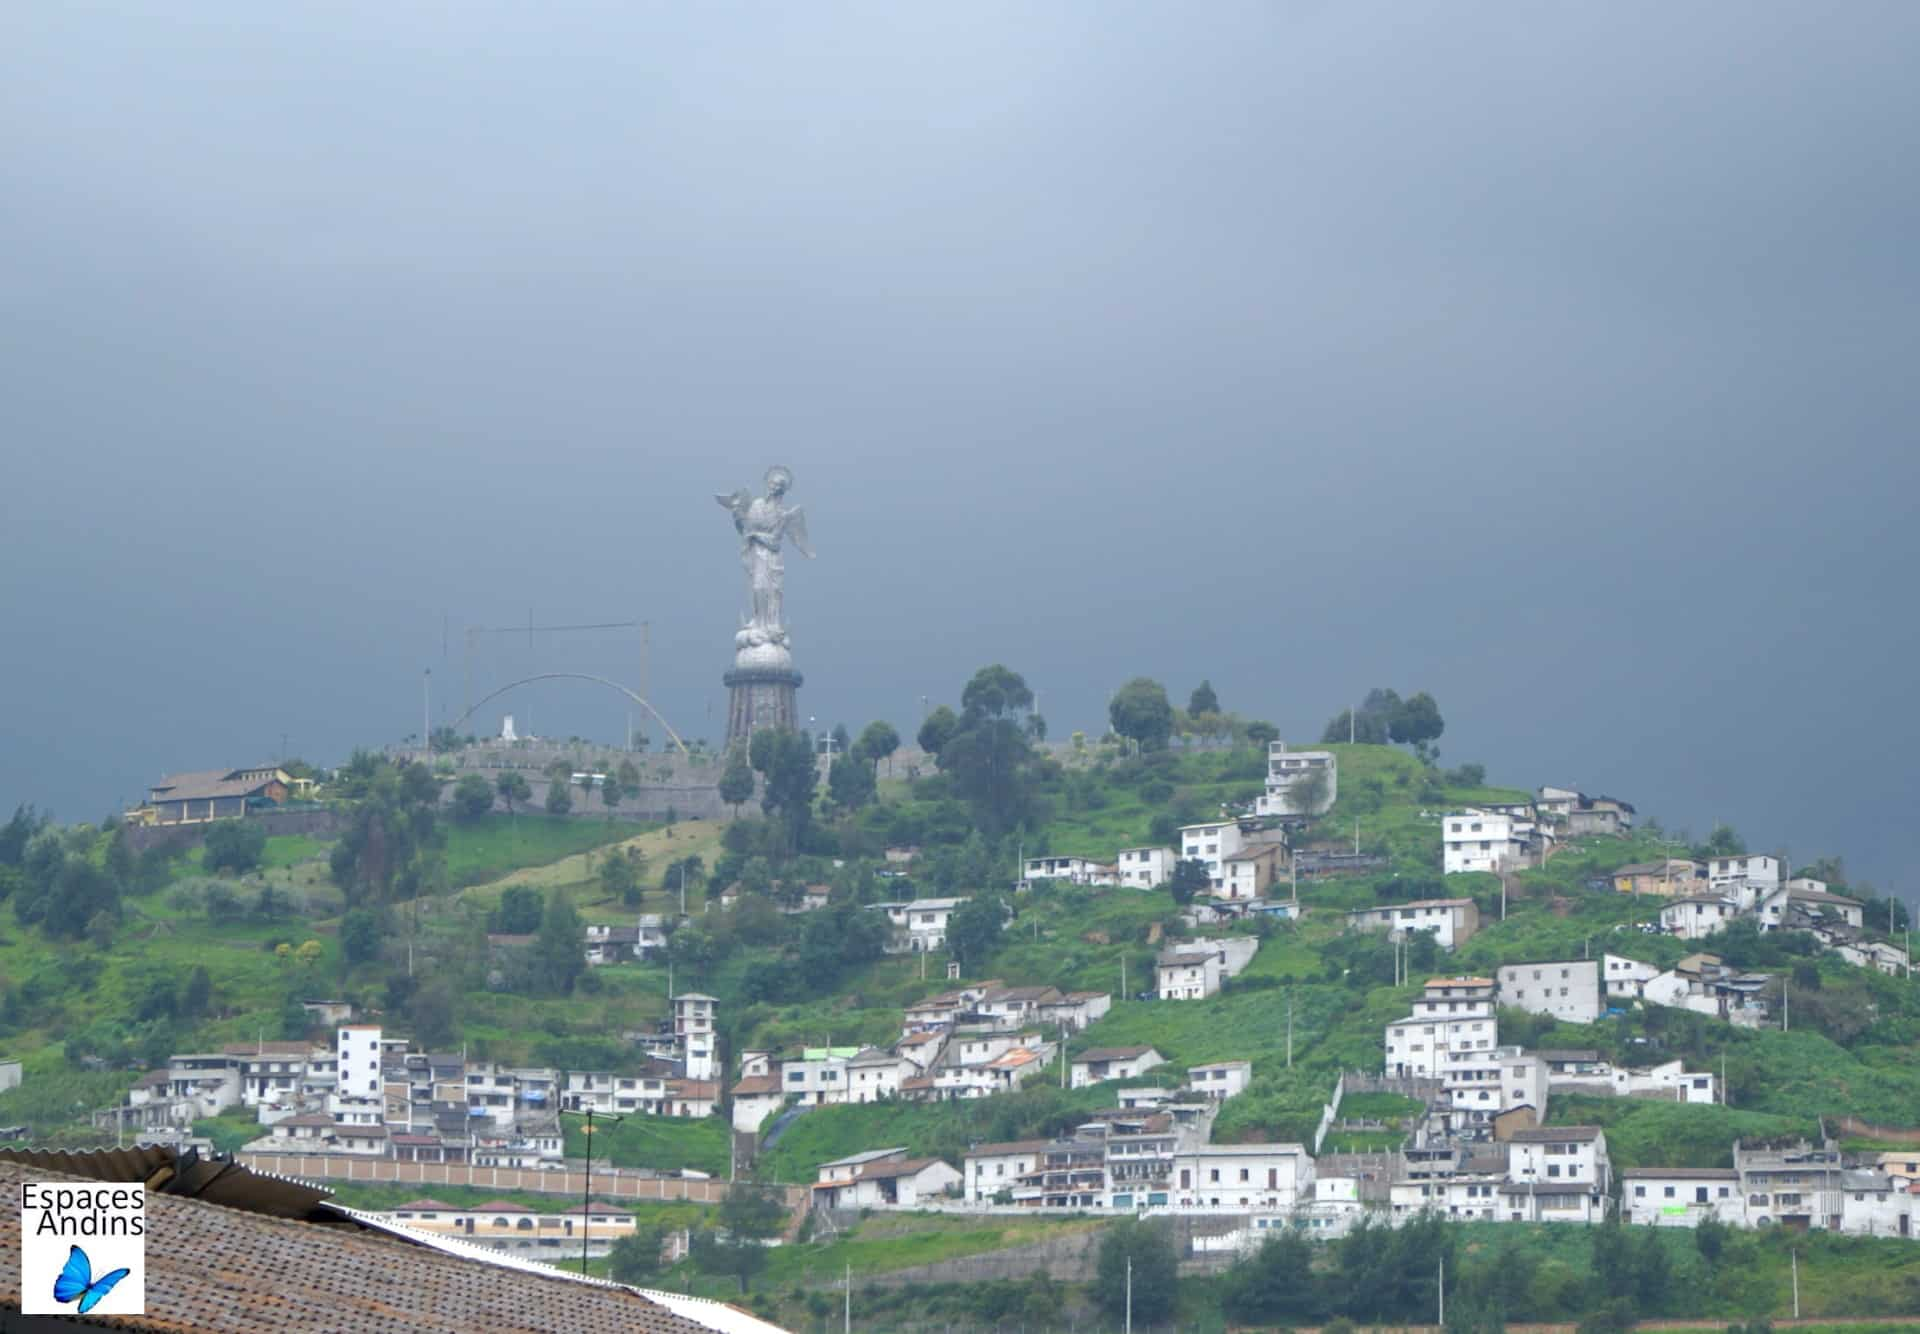 Le panecillo, Quito / Photo : Espaces andins